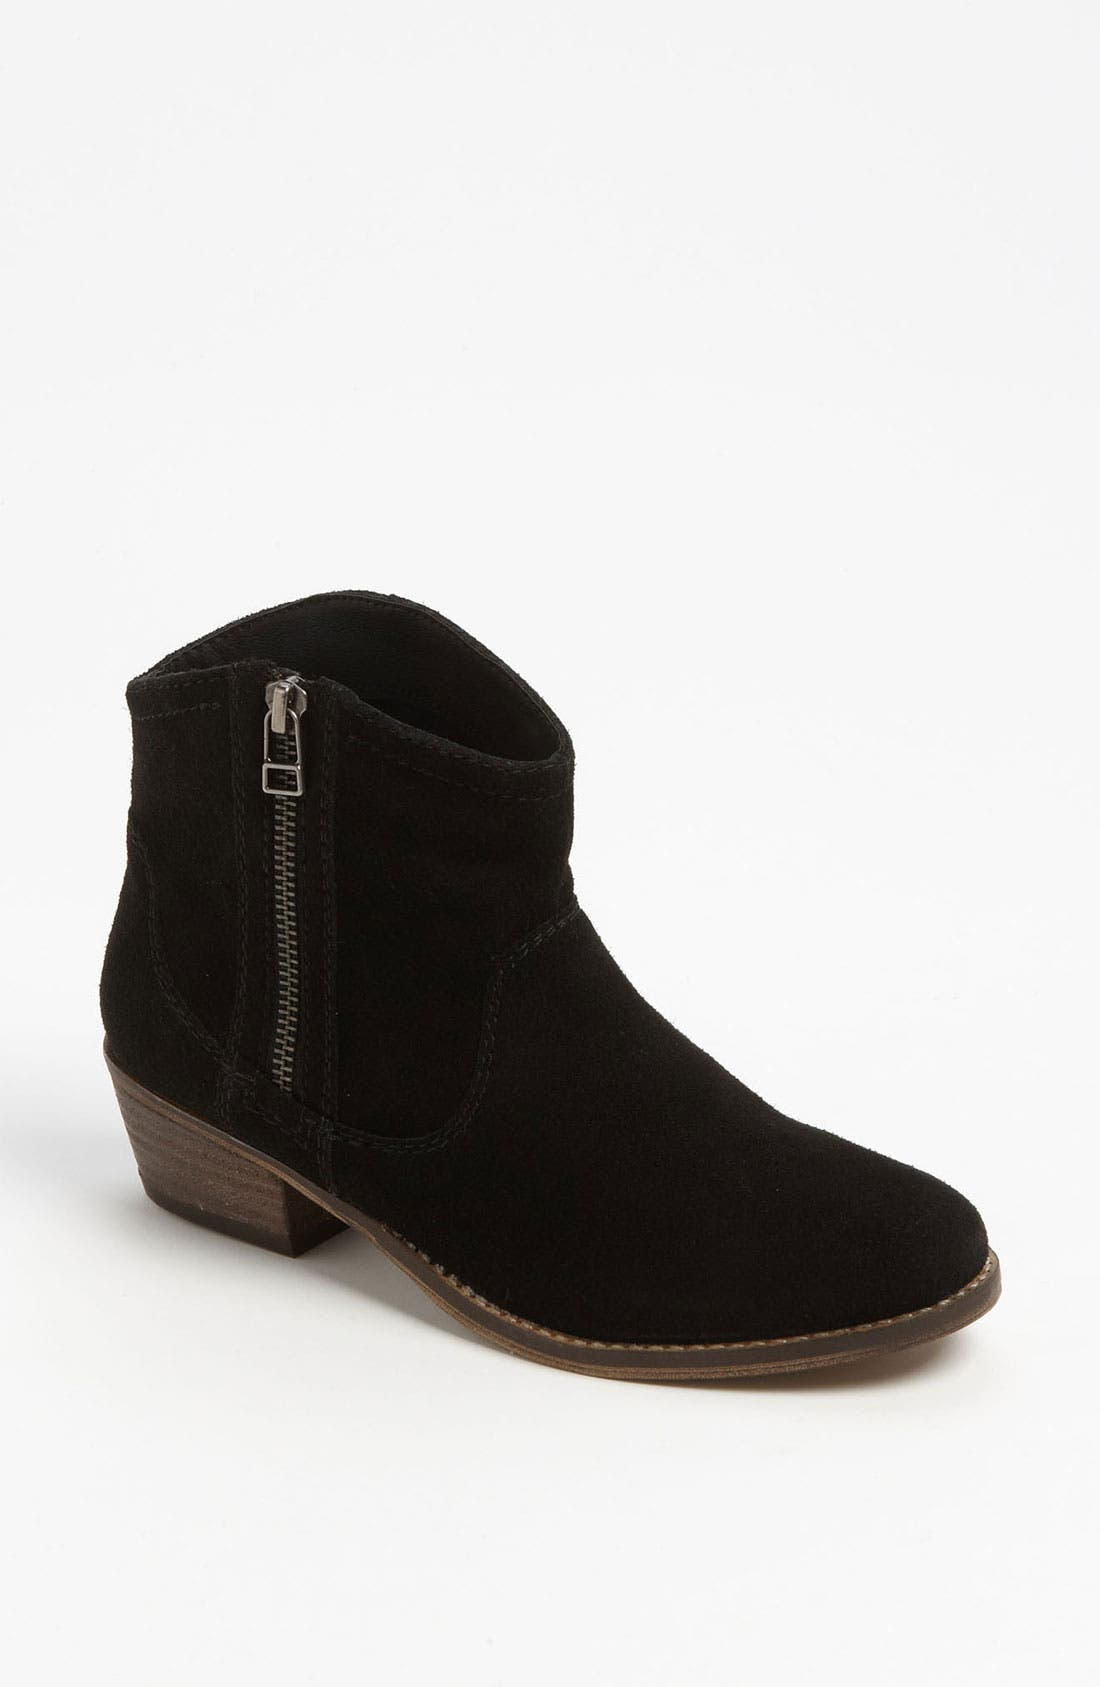 Alternate Image 1 Selected - Steve Madden 'Leonn' Boot